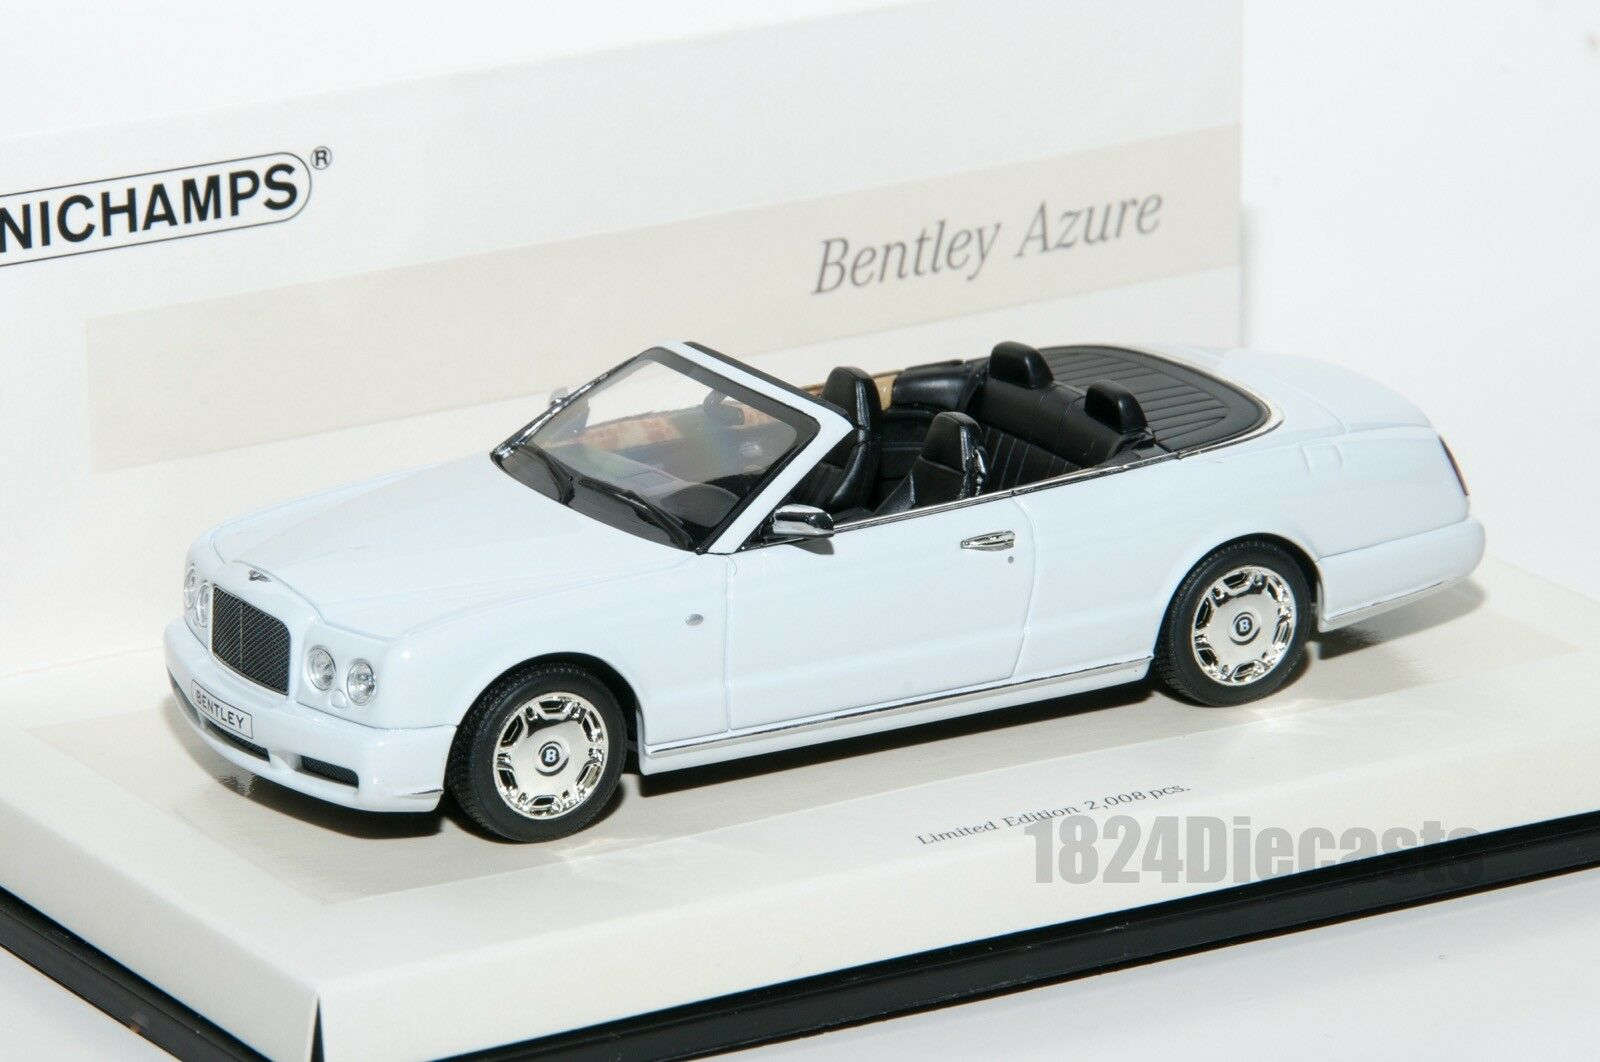 Bentley Azure, Minichamps Linea Bianco 436 139561 scale 1 43, car gift for him